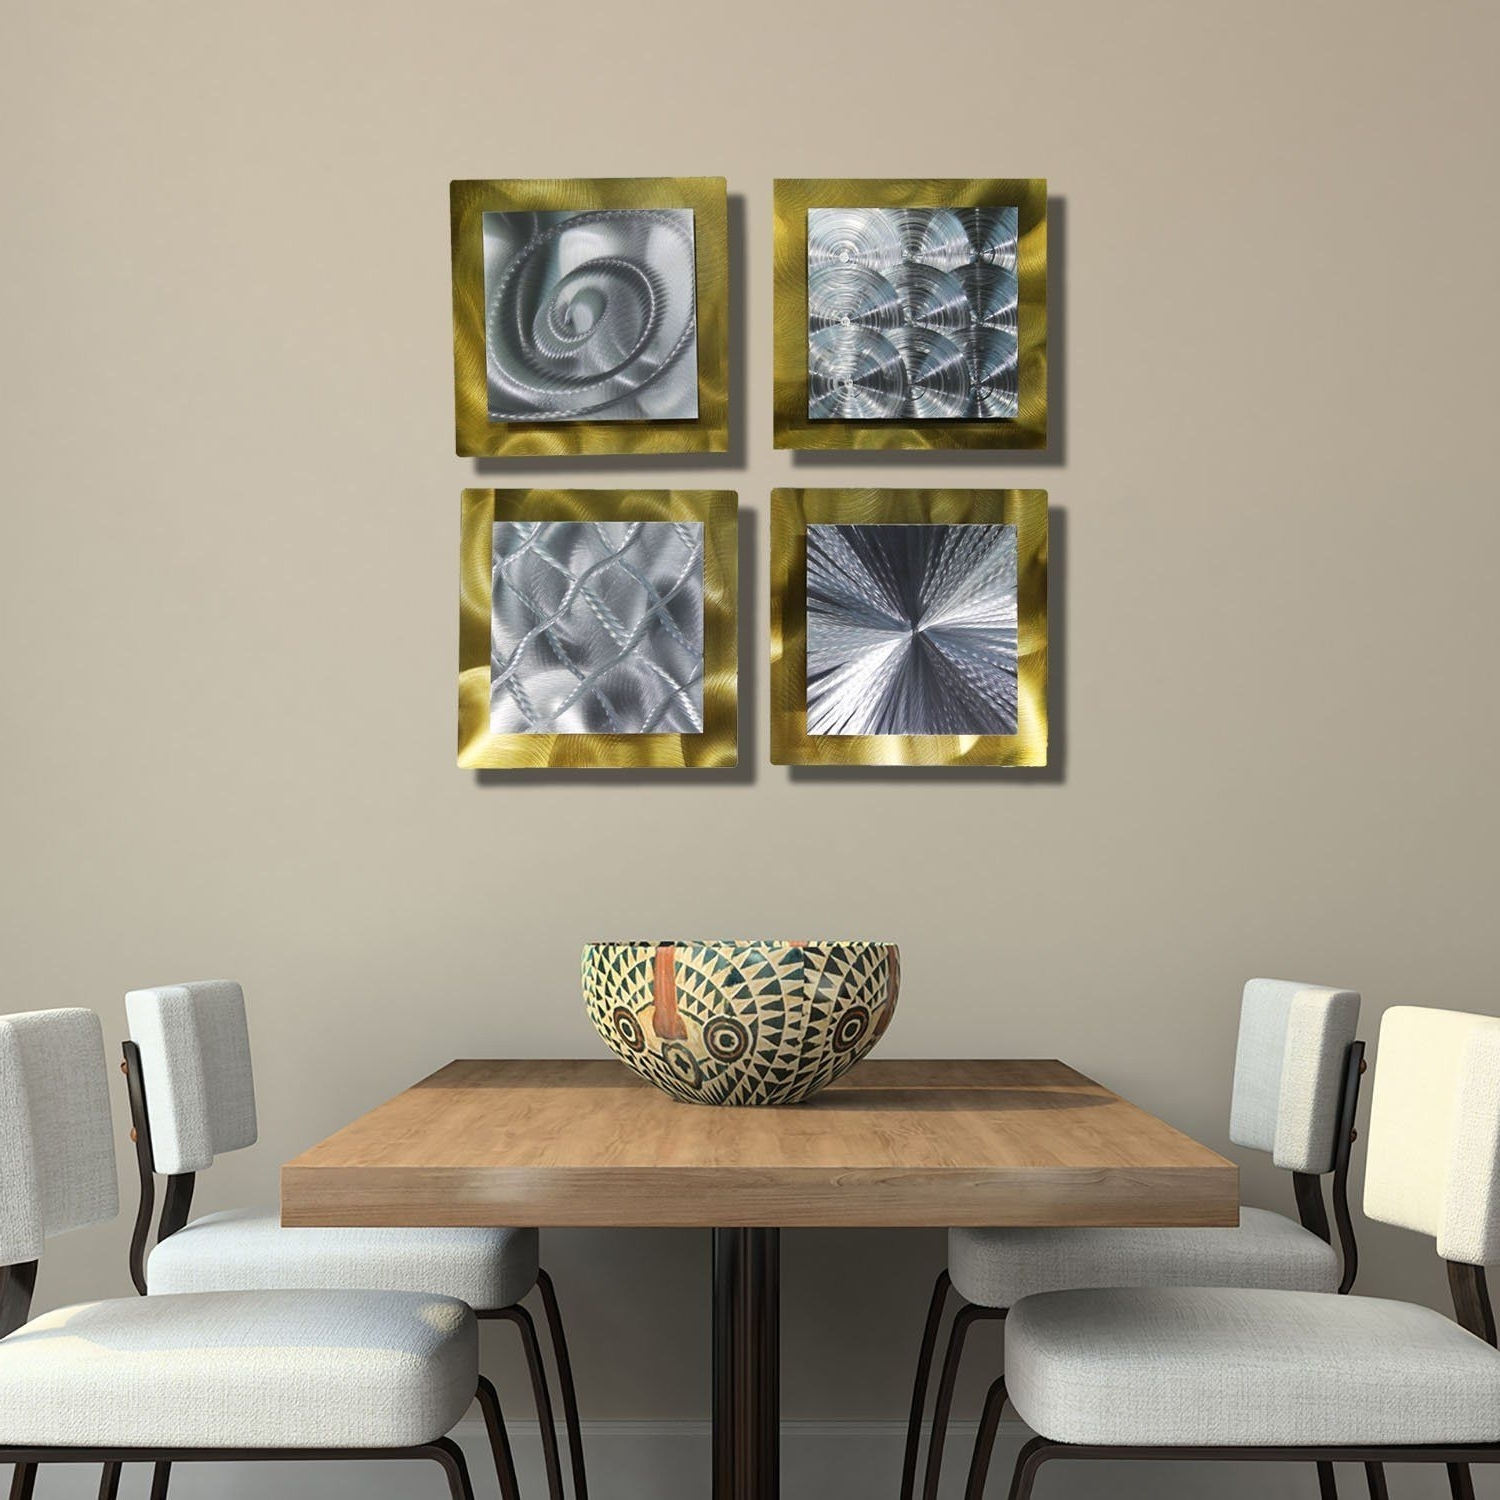 Latest Contemporary Metal Wall Art For Unbelievable Best Of Contemporary Metal Wall Art Uk Decorative (View 8 of 15)